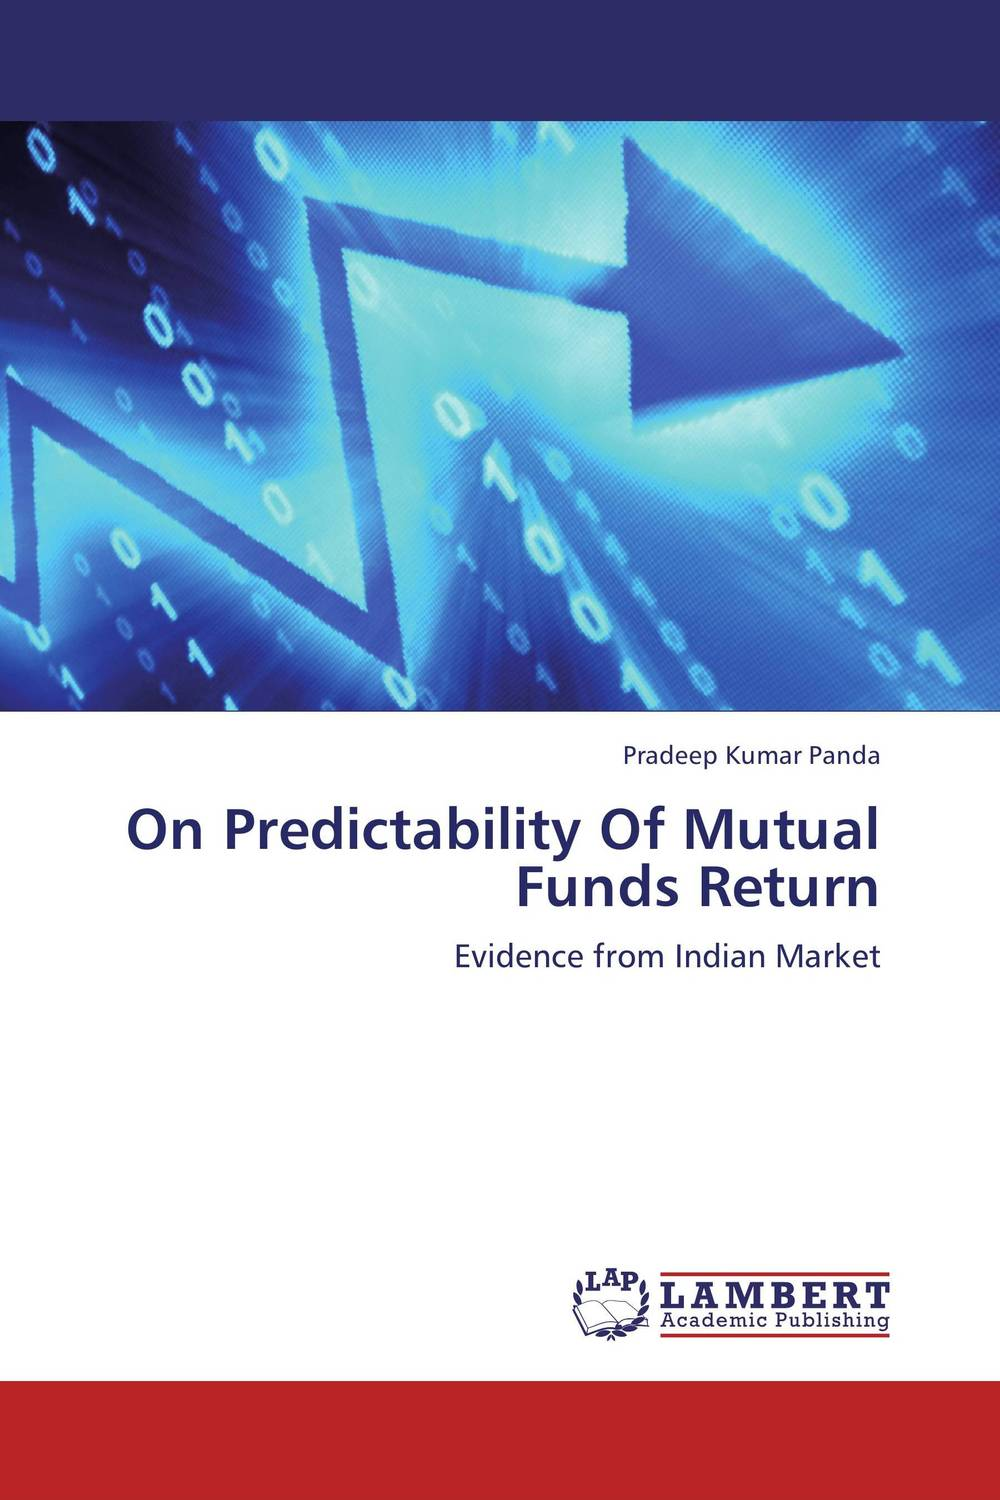 On Predictability Of Mutual Funds Return koning jan de high returns from low risk